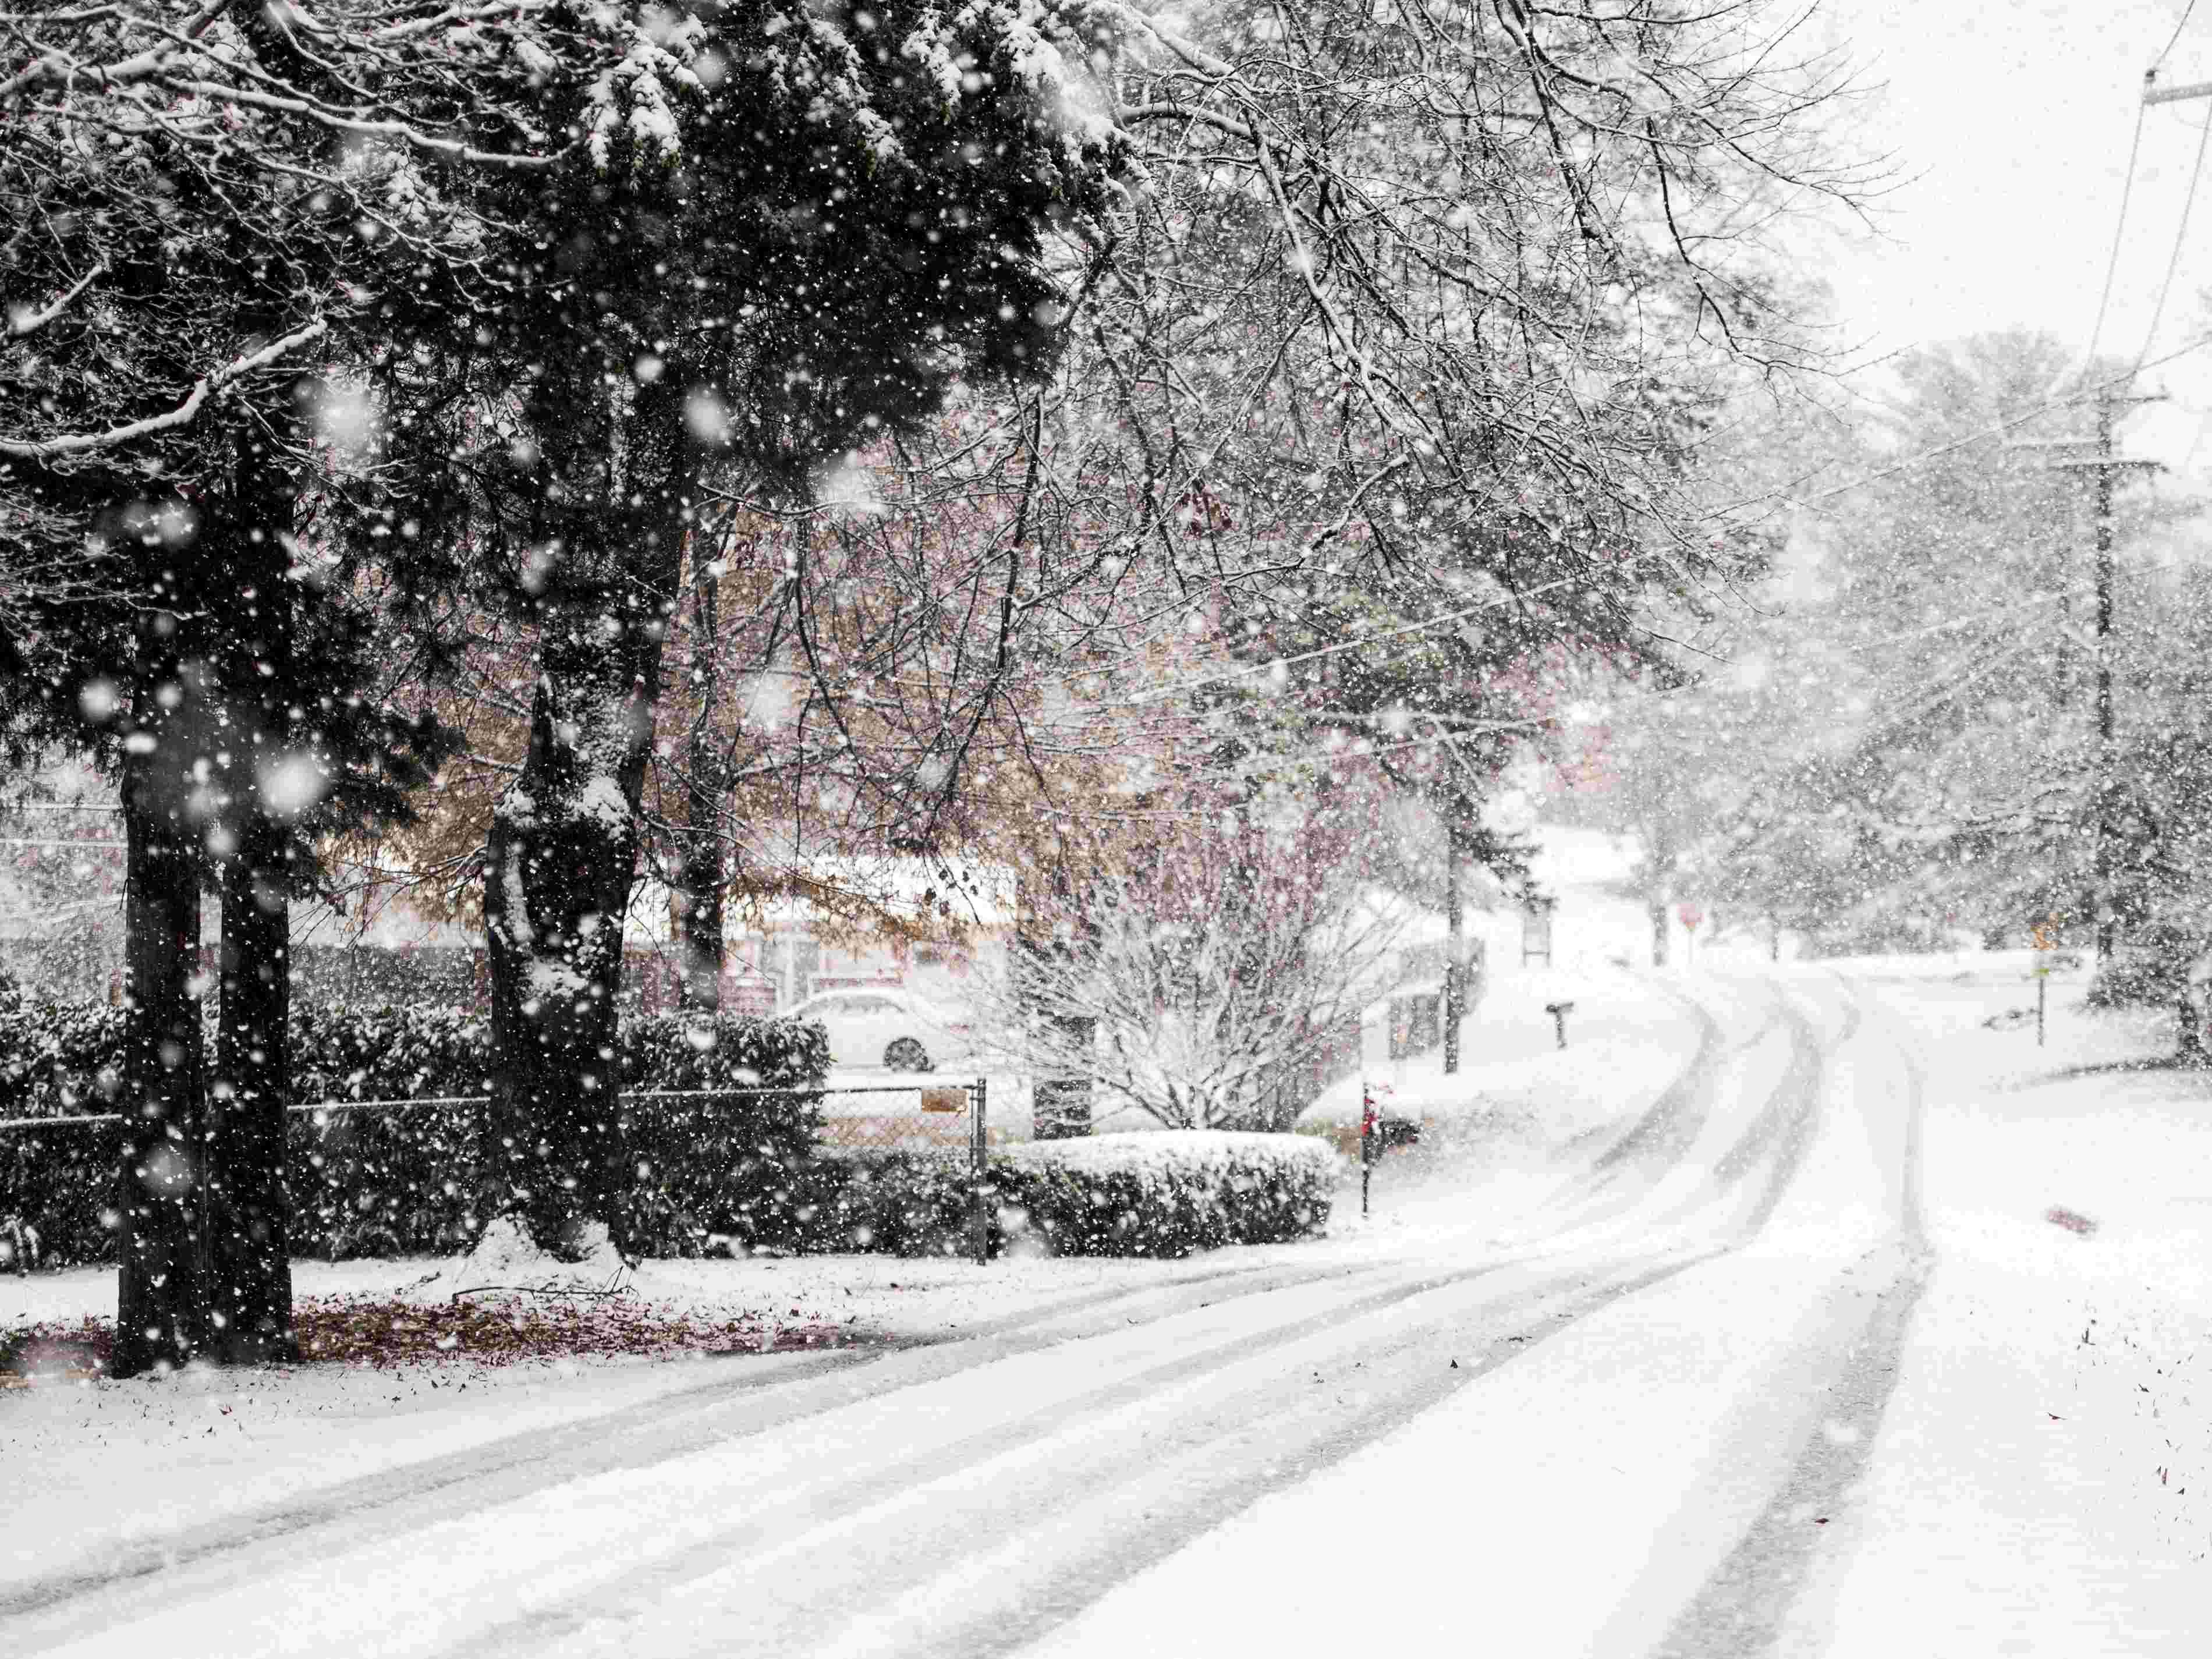 Knoxville, TN 2018 Snow, Snow images, Winter weather